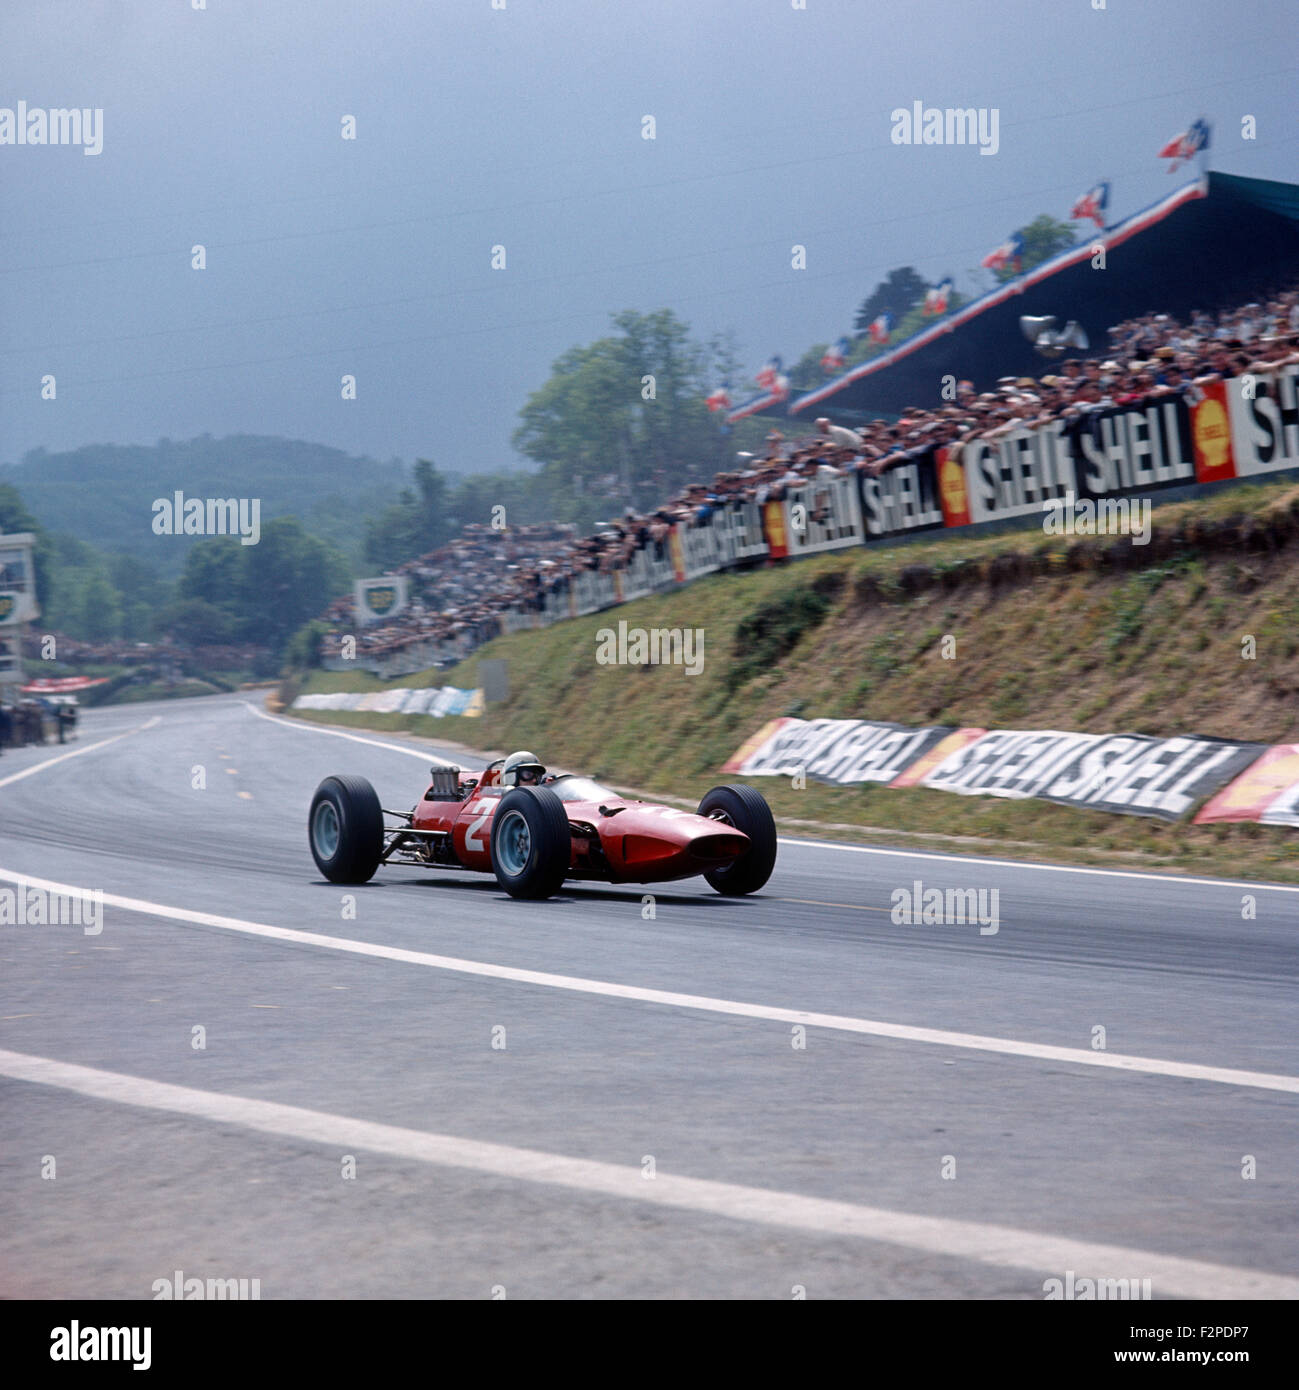 John Surtees in a Ferrari 158 finished 3rd in the French GP at Clermont Ferrand 27 June 1965 - Stock Image